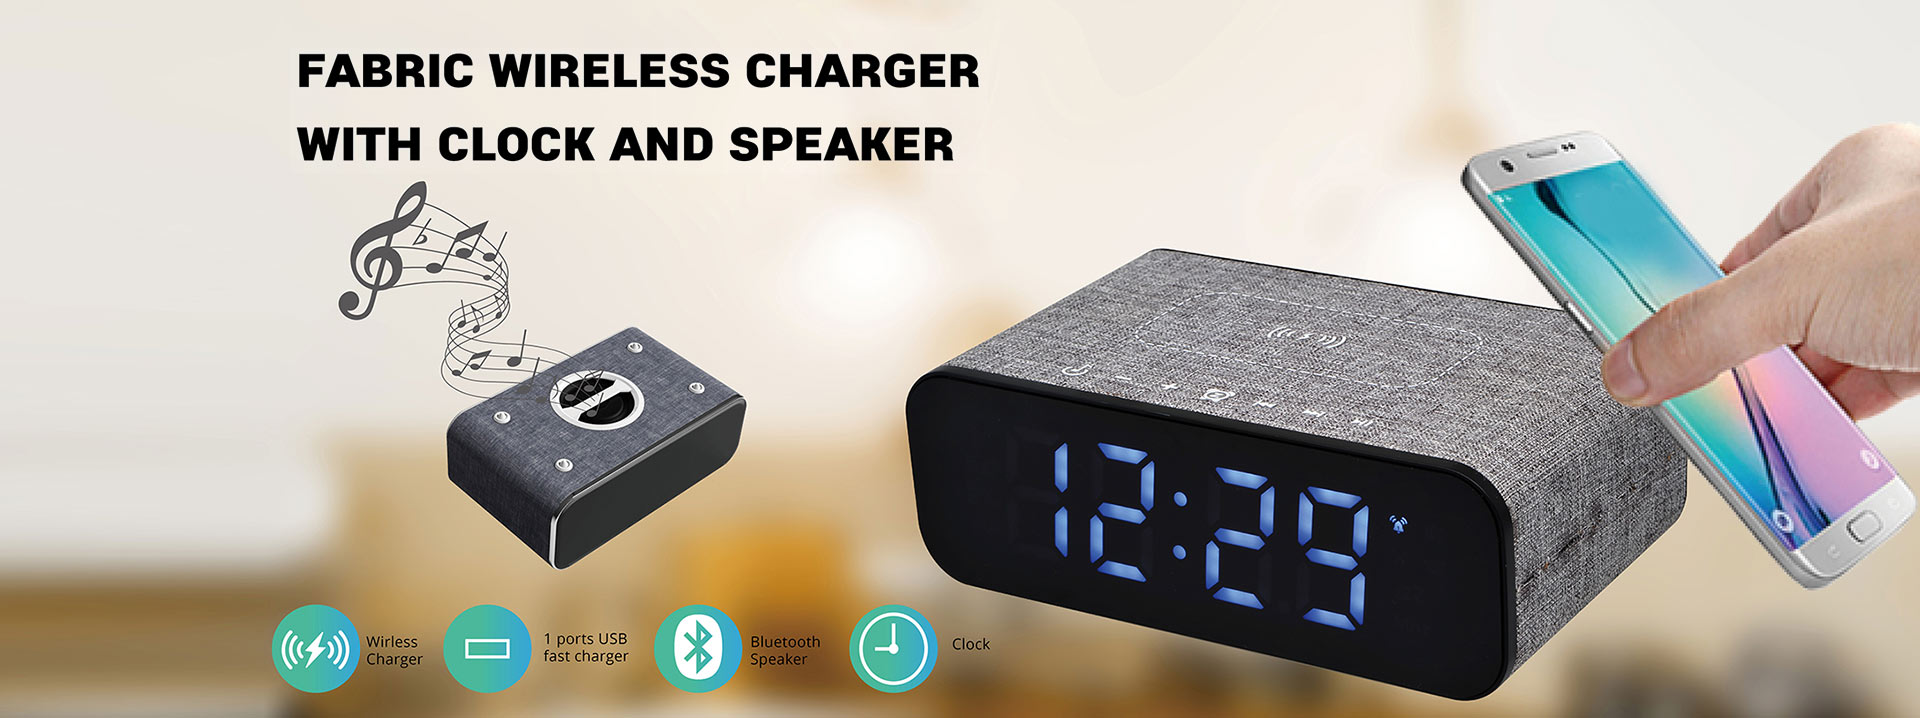 Desktop Wireless Charging Station with Clock